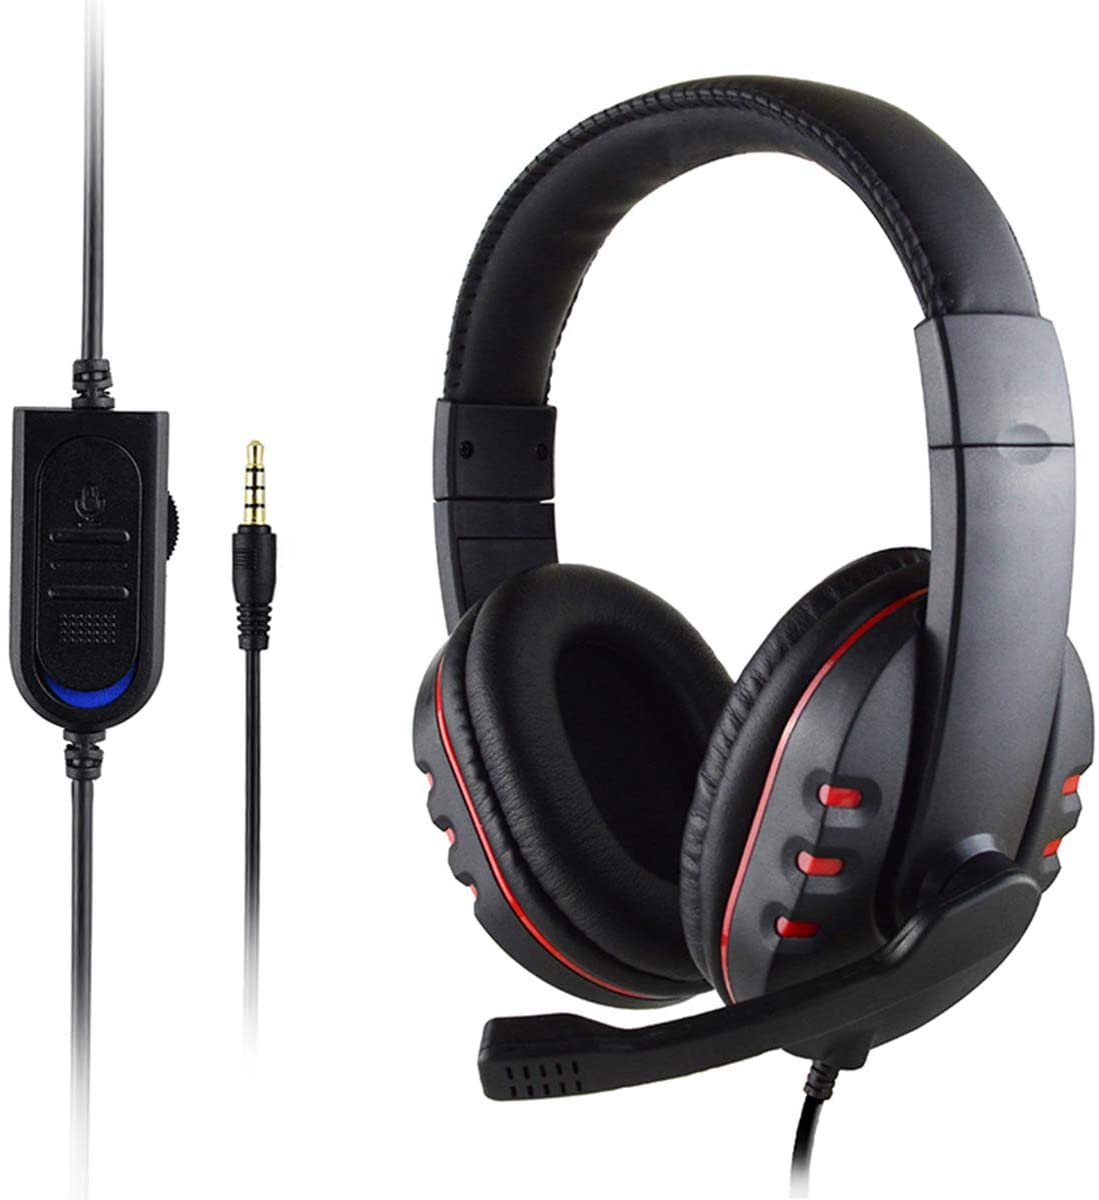 Stereo Gaming Headset with Mic for Xbox One/PS4, Over-Ear PC Headphones Low Bass Sound, 3.5 mm Audio Jack, Volume Control, for PS4 / Xbox One S/Xbox One/Nintendo Switch